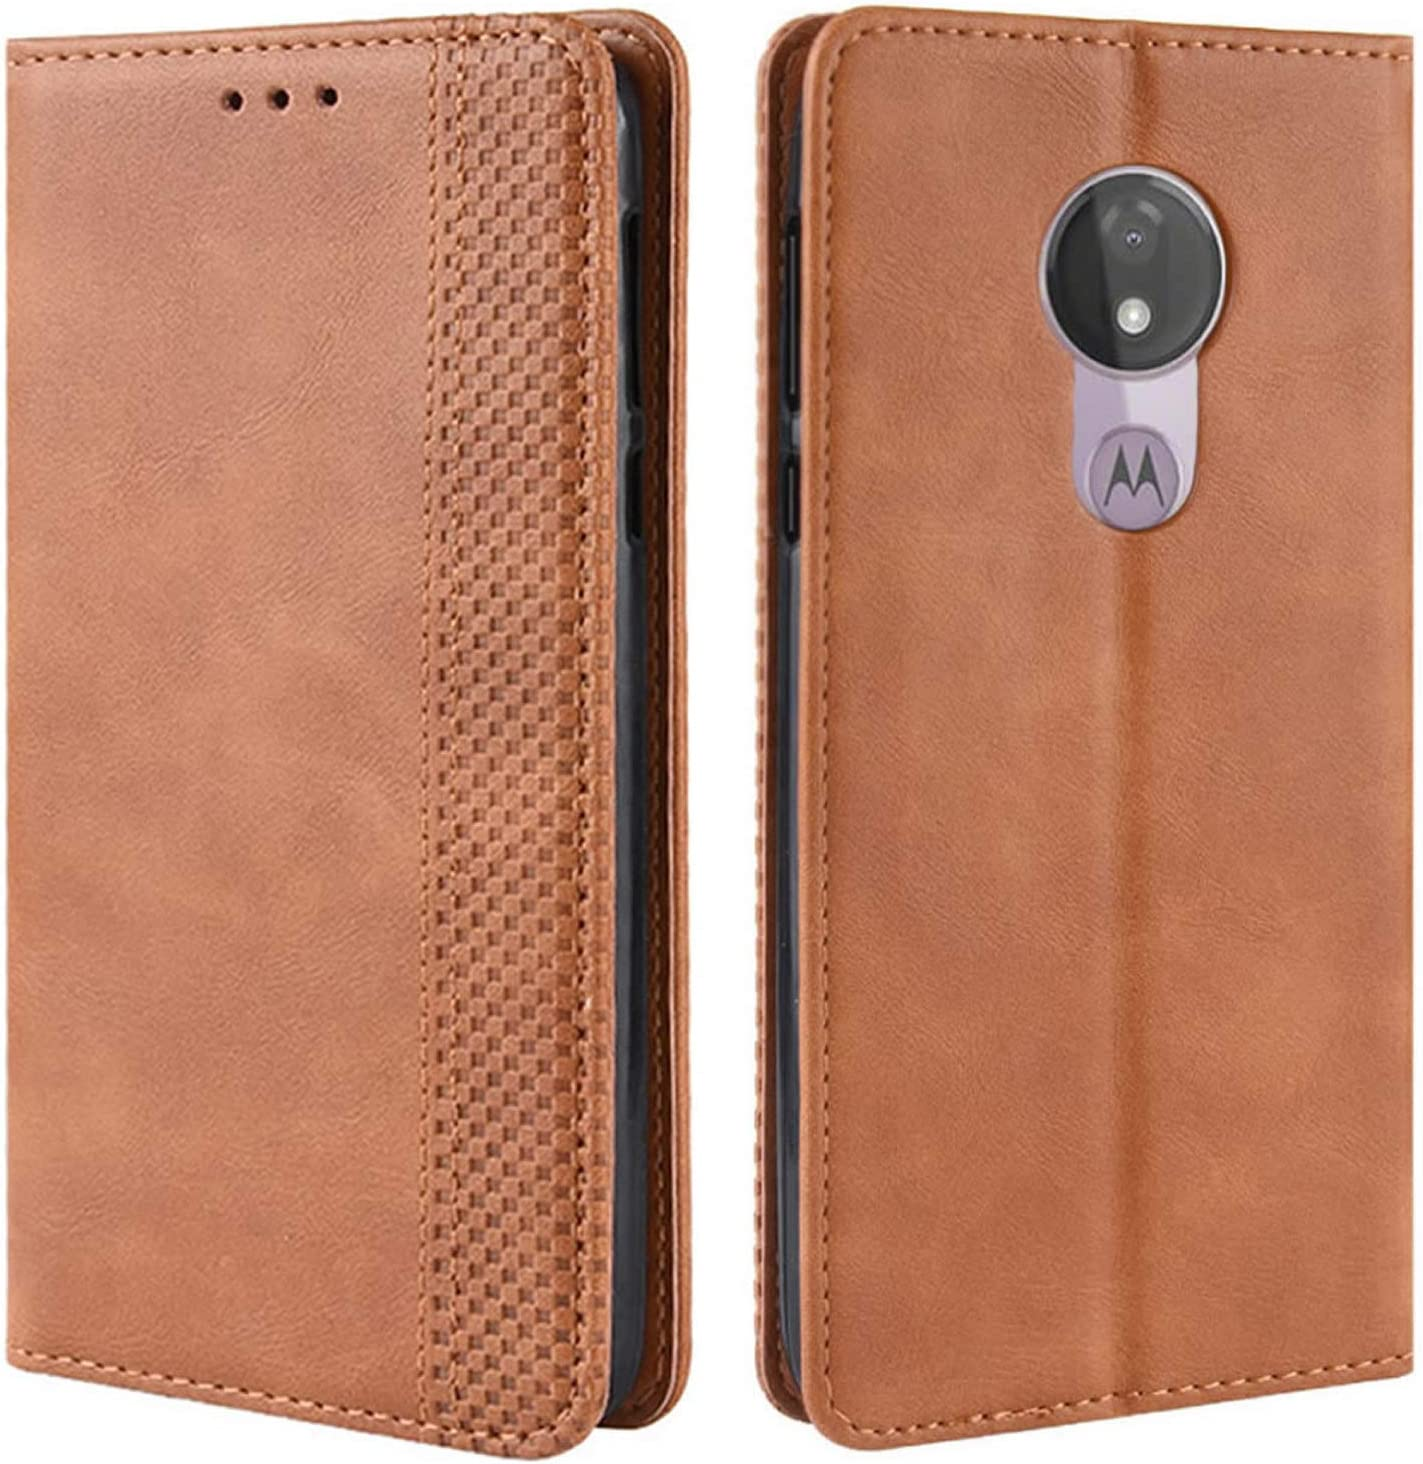 HualuBro Motorola Moto G7 Power Case, Moto G7 Supra Case, Moto G7 Optimo Maxx Case, Magnetic Full Body Shockproof Flip Leather Wallet Case Cover with Card Holder for Moto G7 Power Phone Case (Brown)